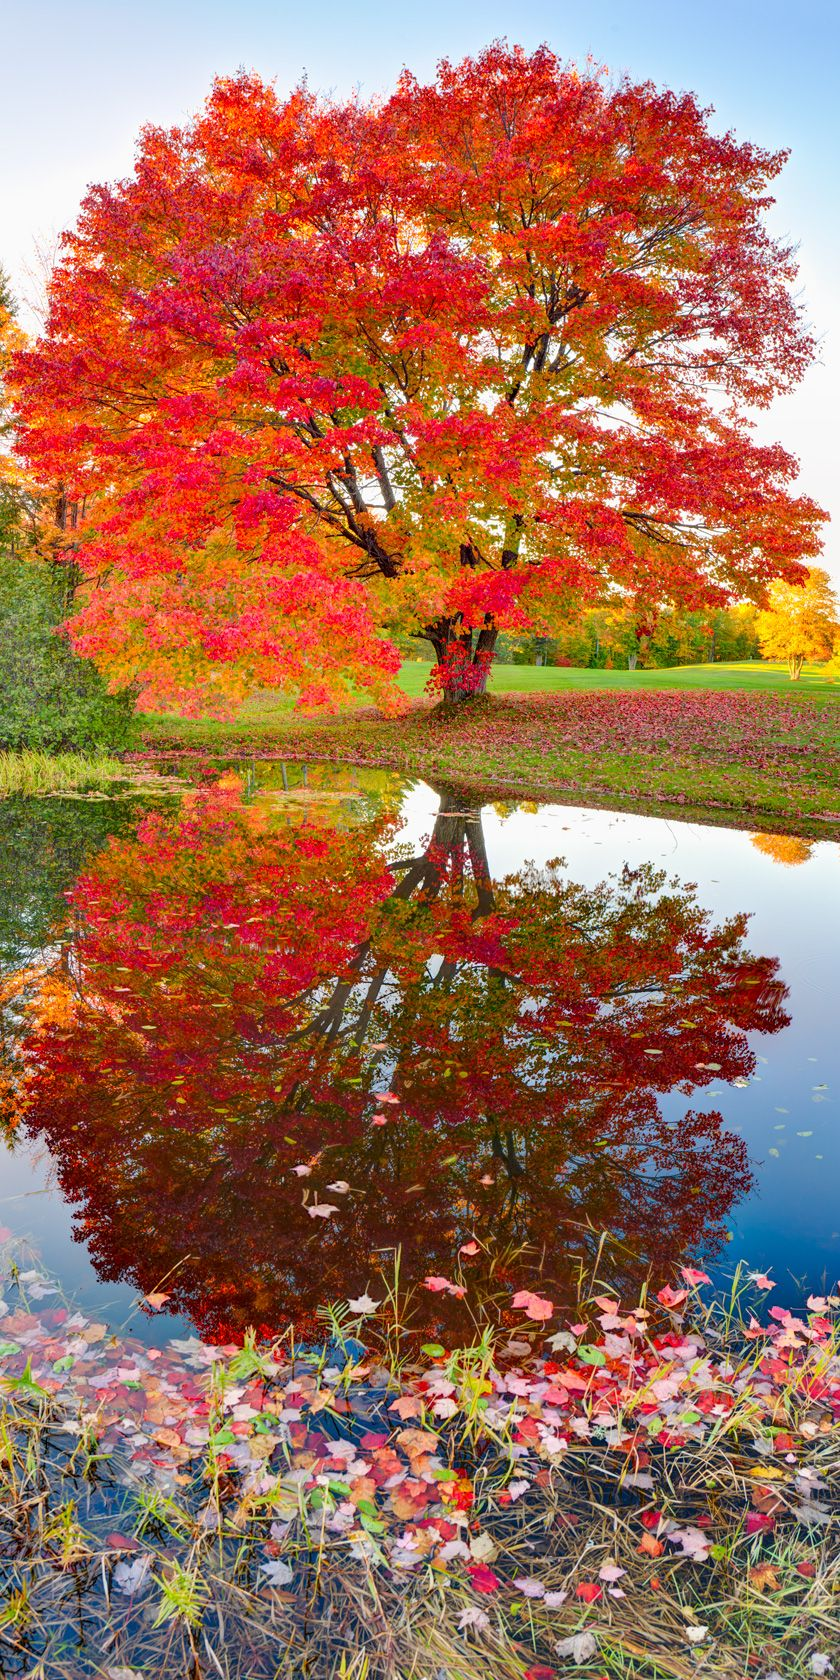 Beautiful landscape tree and reflections. Add trees with colorful foliage or striking flowers near water. #falltrees